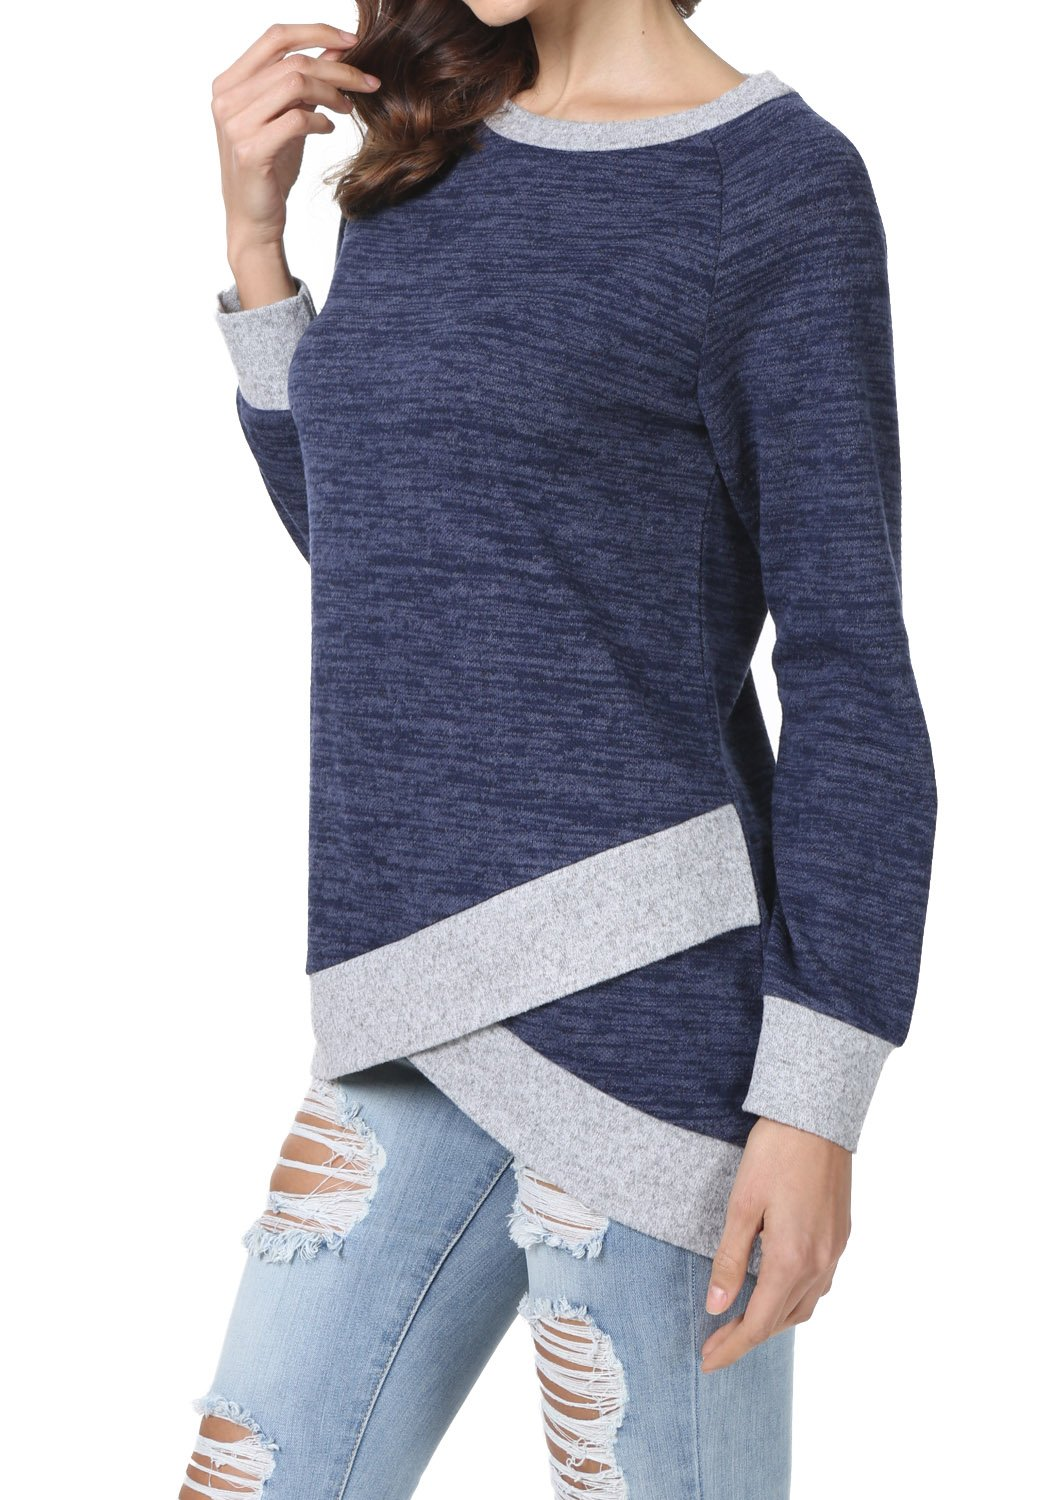 levaca Womens Long Sleeve O Neck Cross Loose Fit Casual Blouse Tunic Tops Blue M by levaca (Image #3)